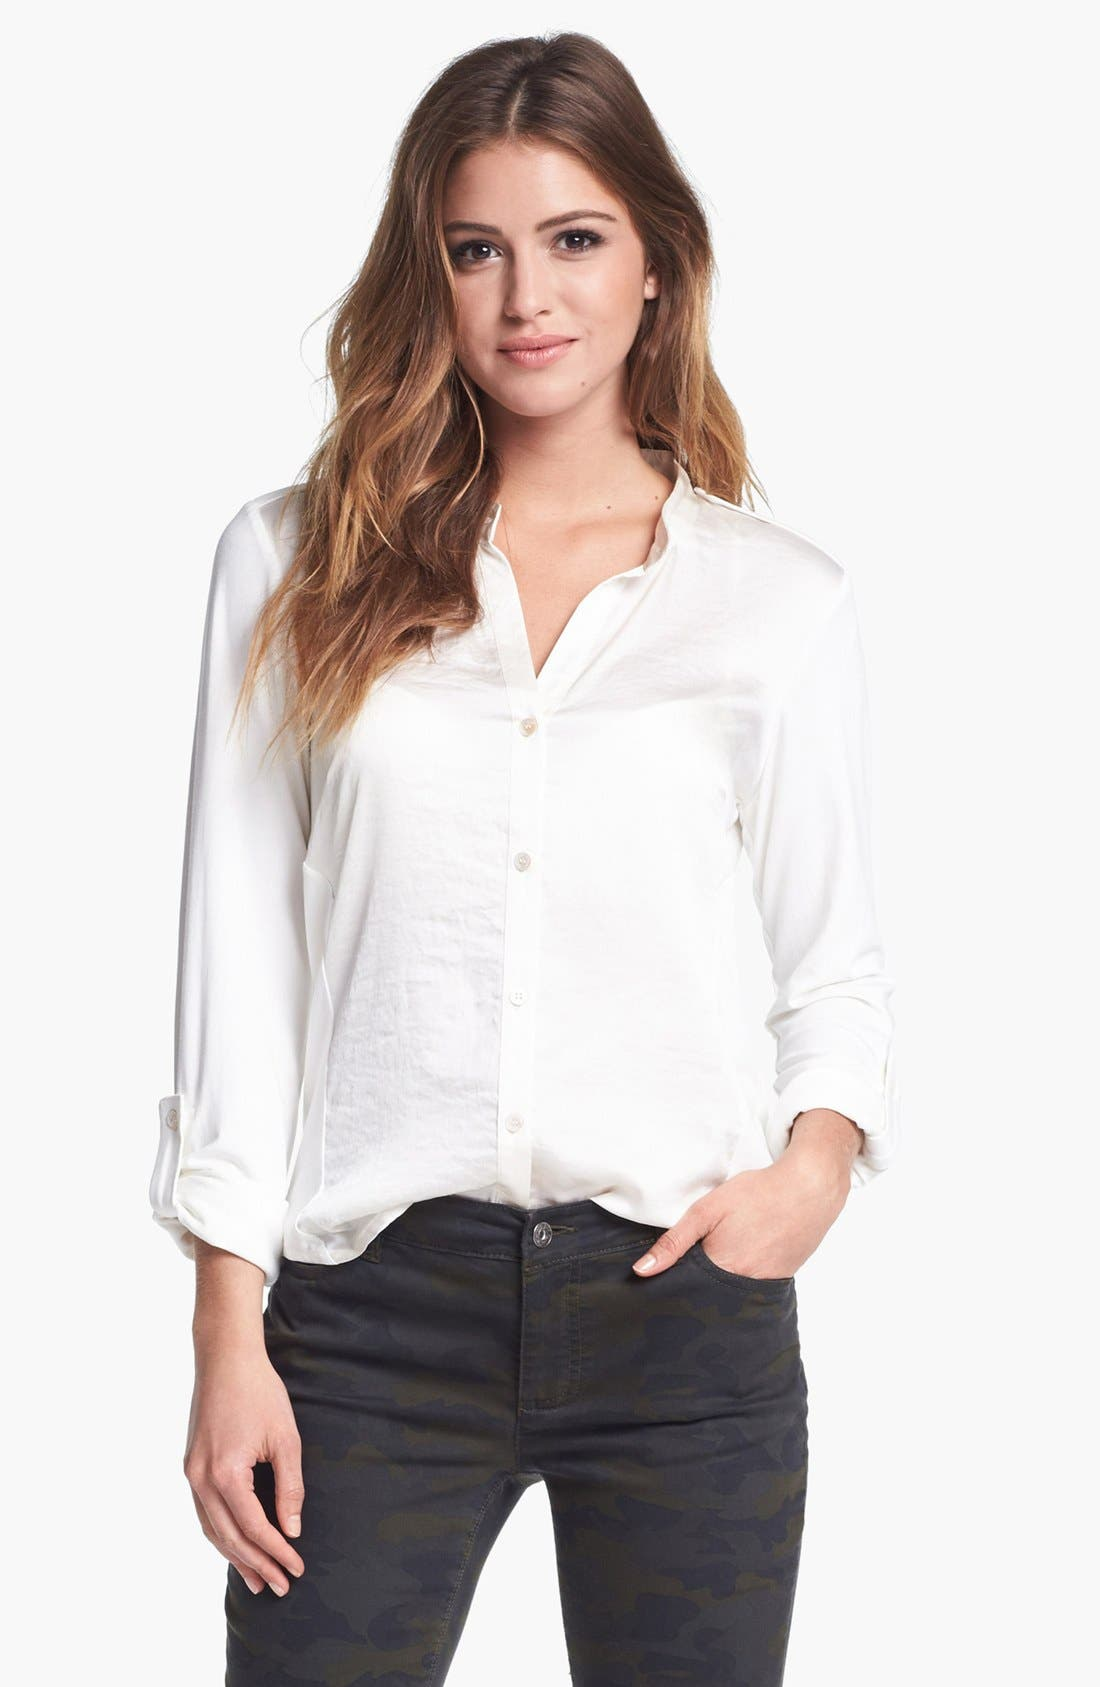 Alternate Image 1 Selected - Vince Camuto Mixed Media Shirt (Nordstrom Exclusive)